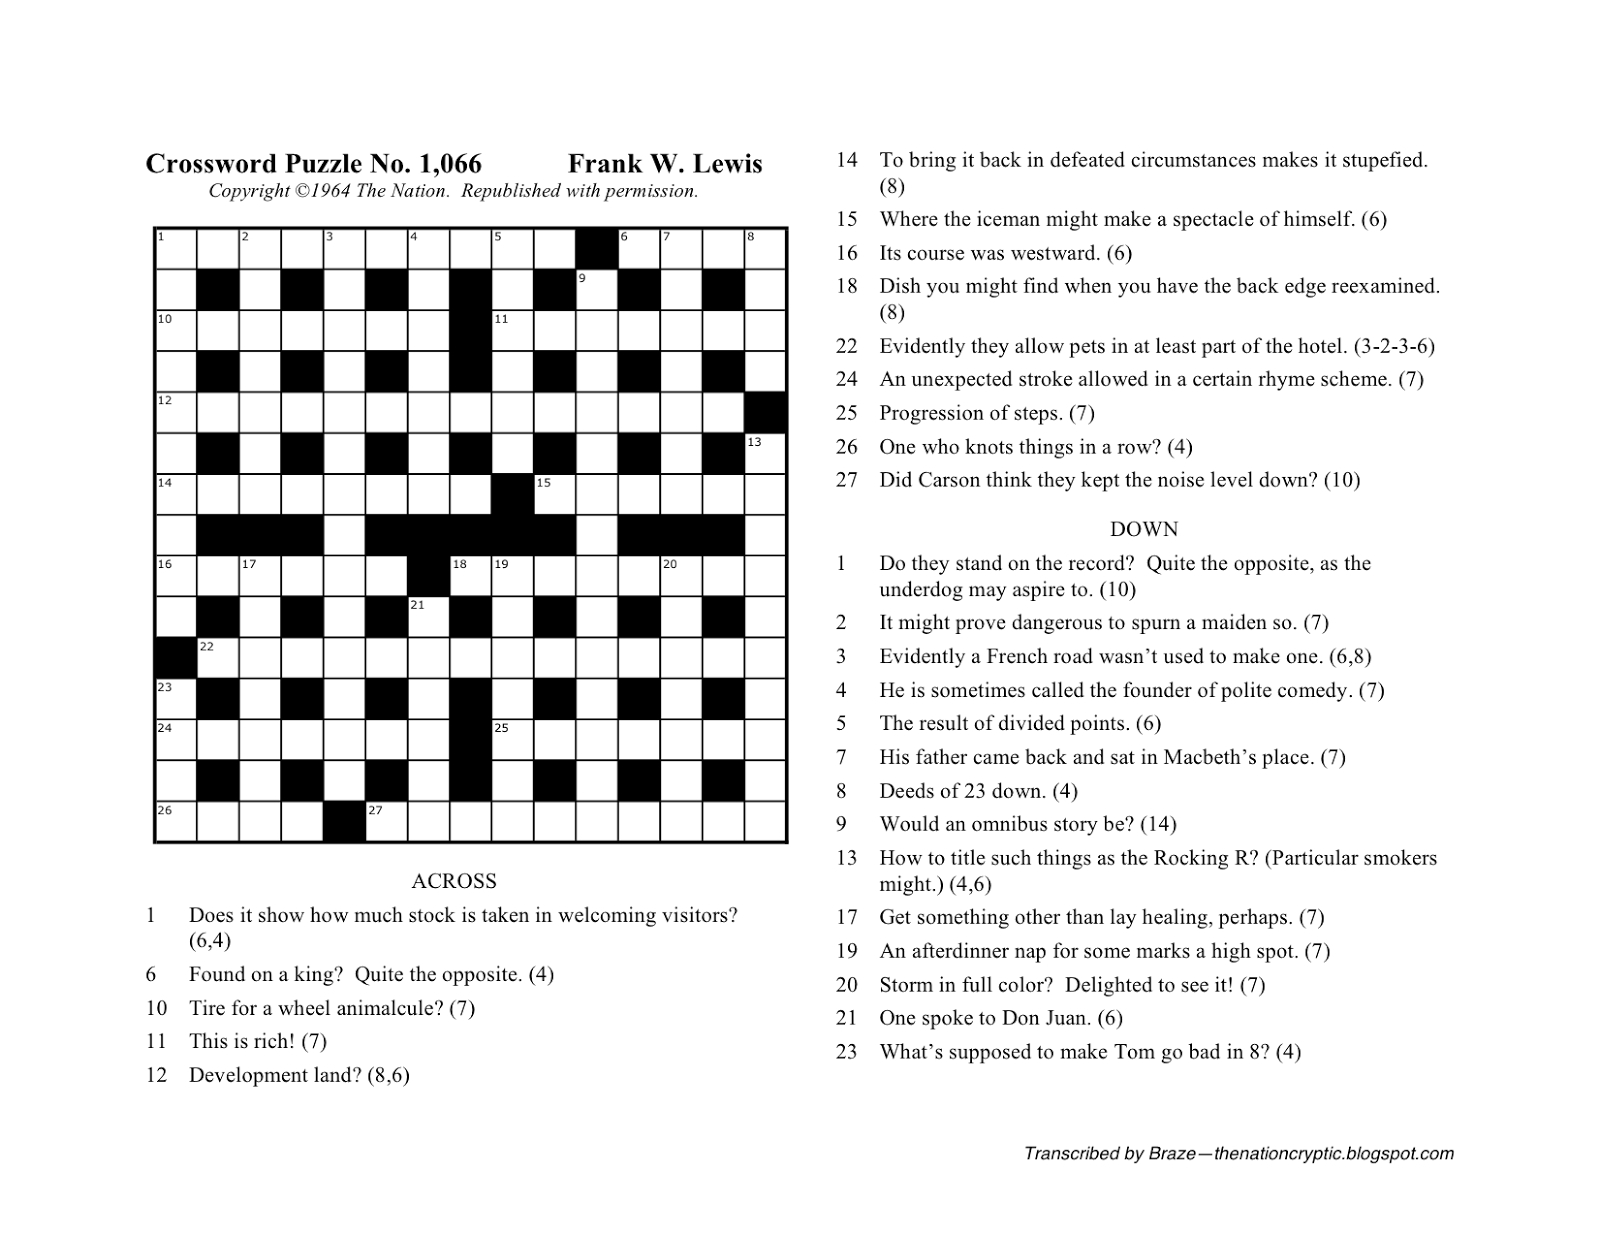 The Nation Cryptic Crossword Forum: Nat Hentoff (Puzzle No. 1,066) - Printable Wall Street Journal Crossword Puzzle